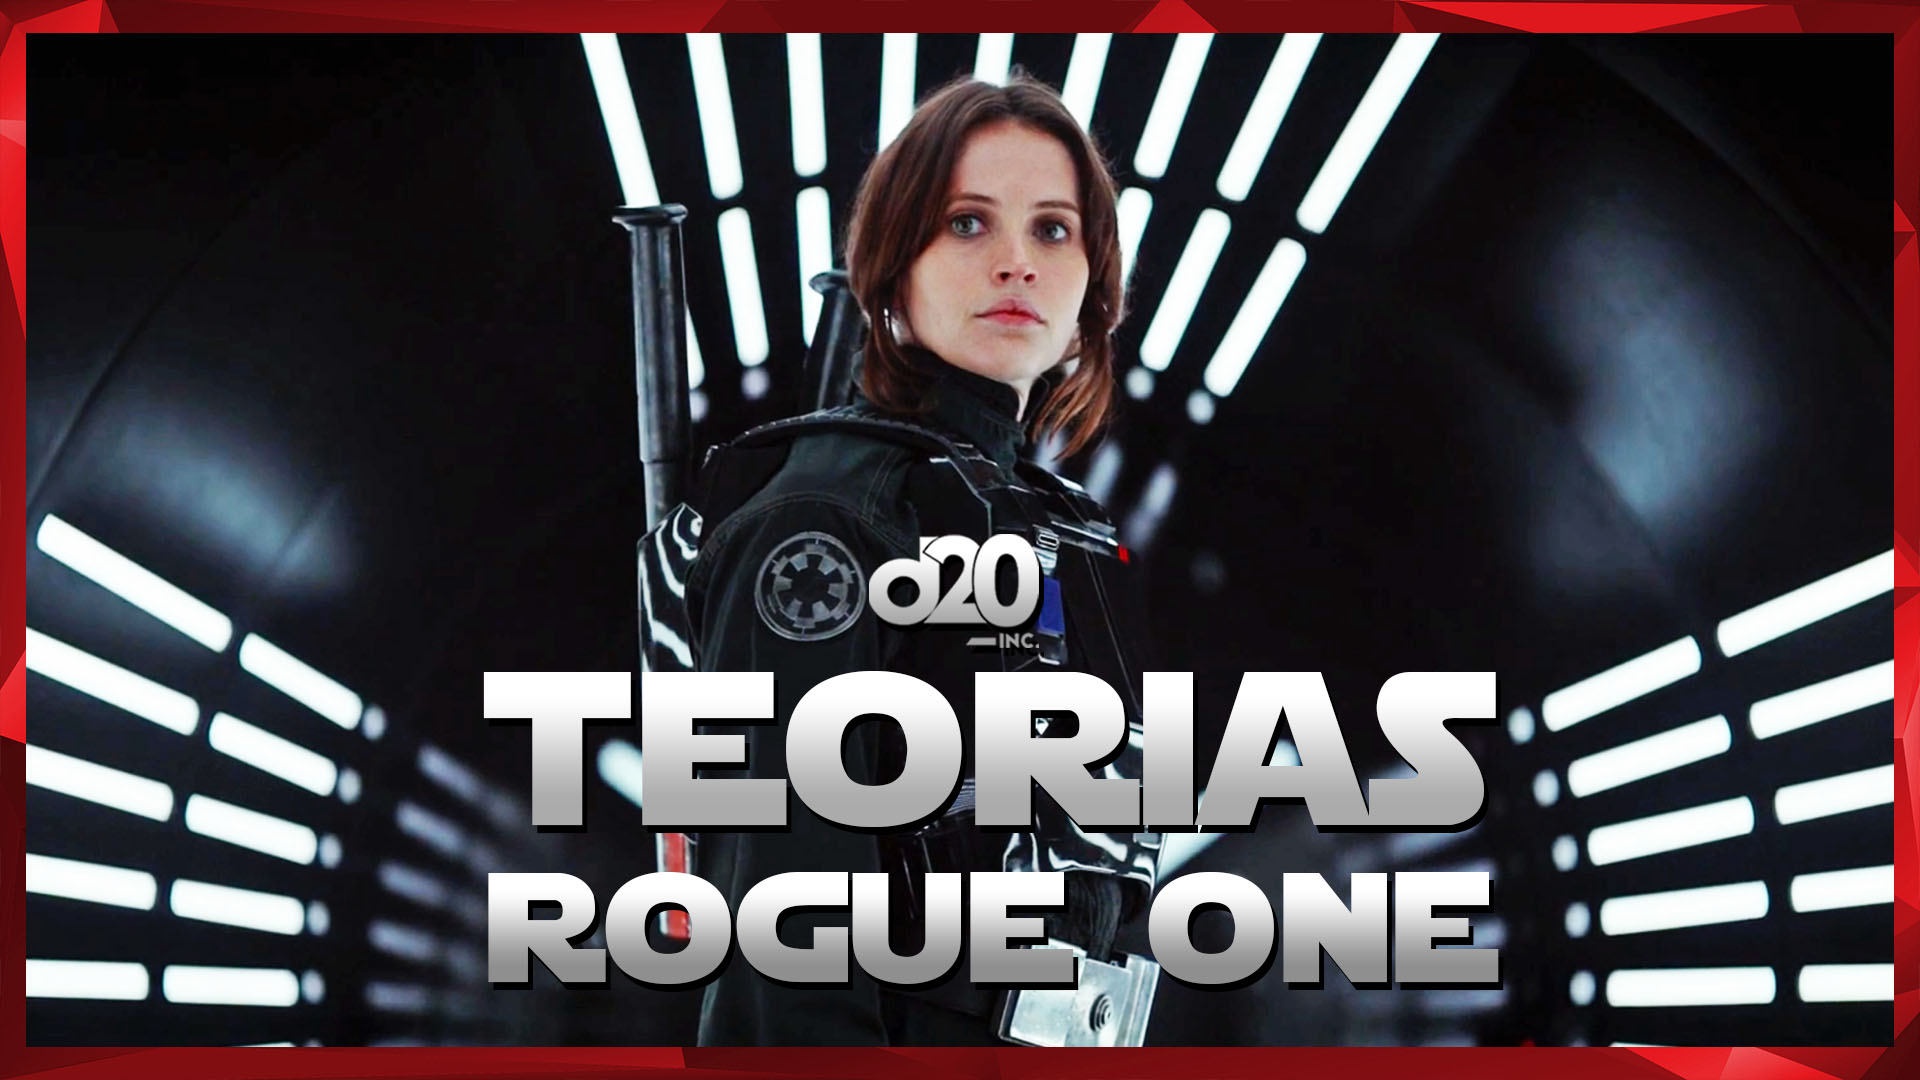 Rogue One (Teorias Star Wars) | D20 Lab 28